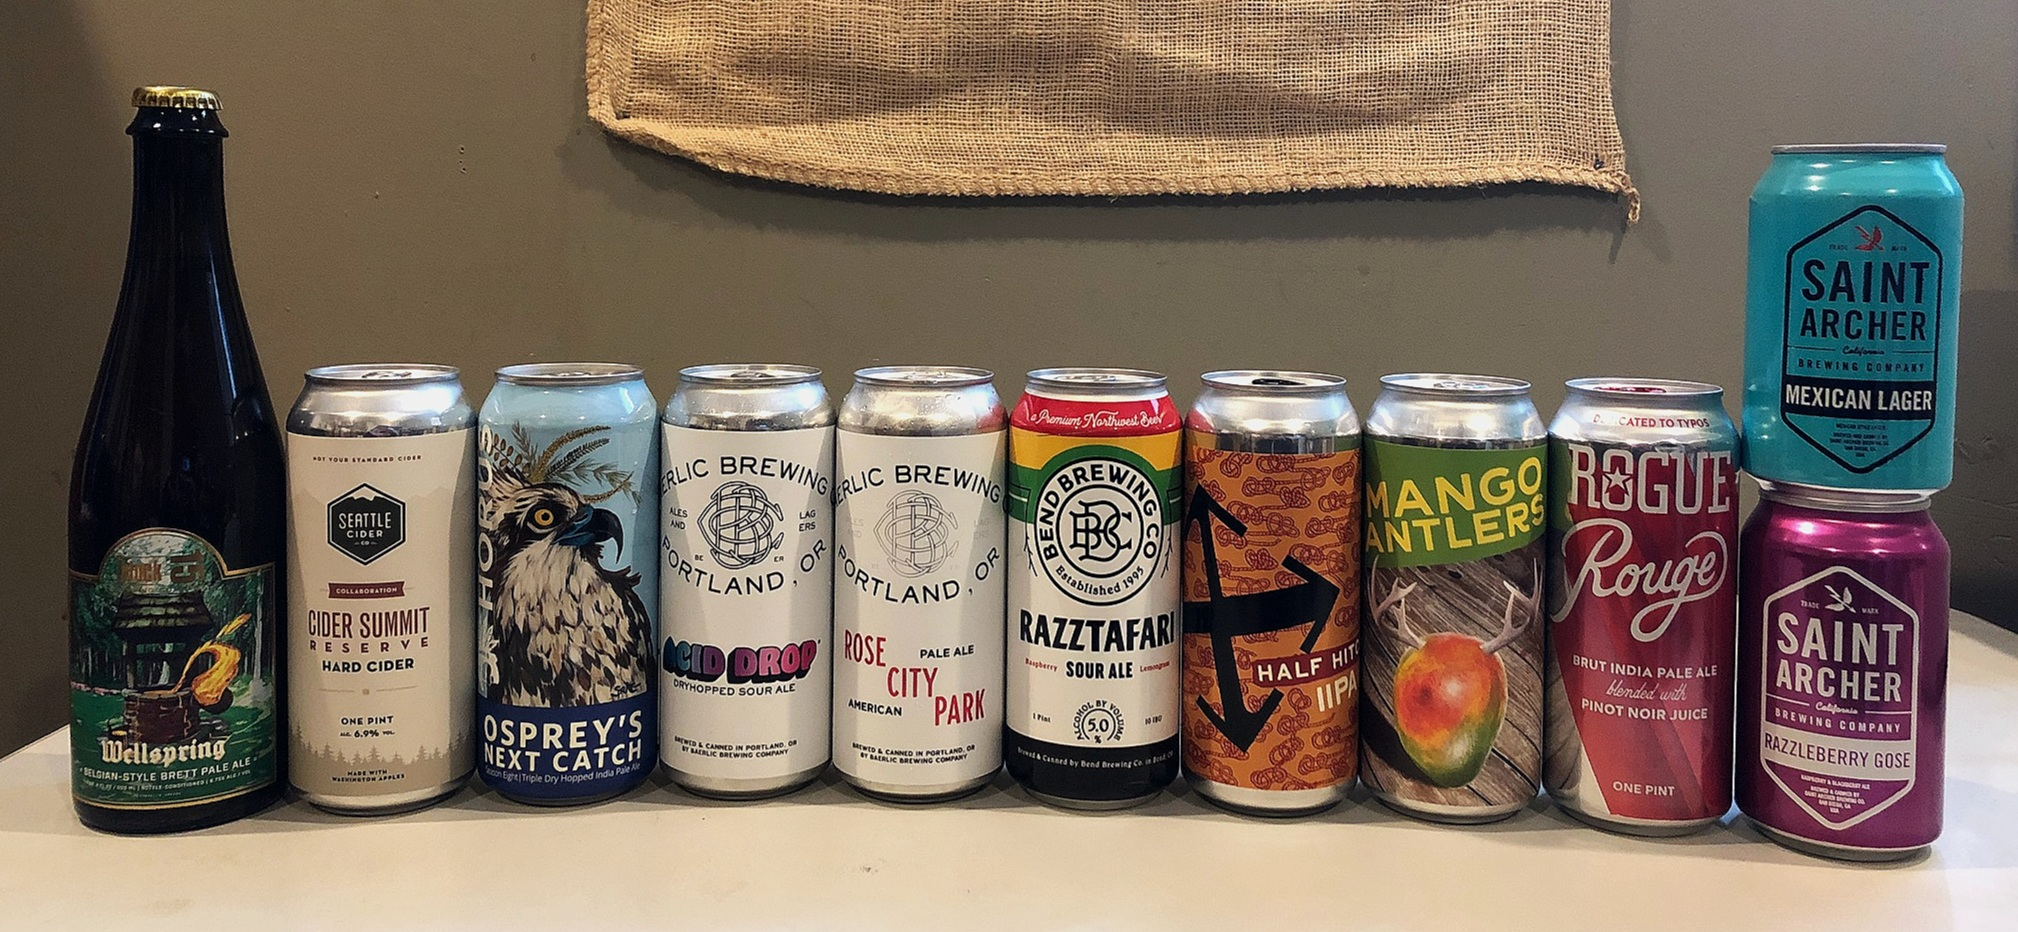 Check out these links to find out more of the breweries featured here:   BLOCK 15  -  SEATTLE CIDER CO.  -  HORUS  -  BAERLIC  -  BEND  -  CRUX  -  WANDER  -  ROGUE  -  SAINT ARCHER